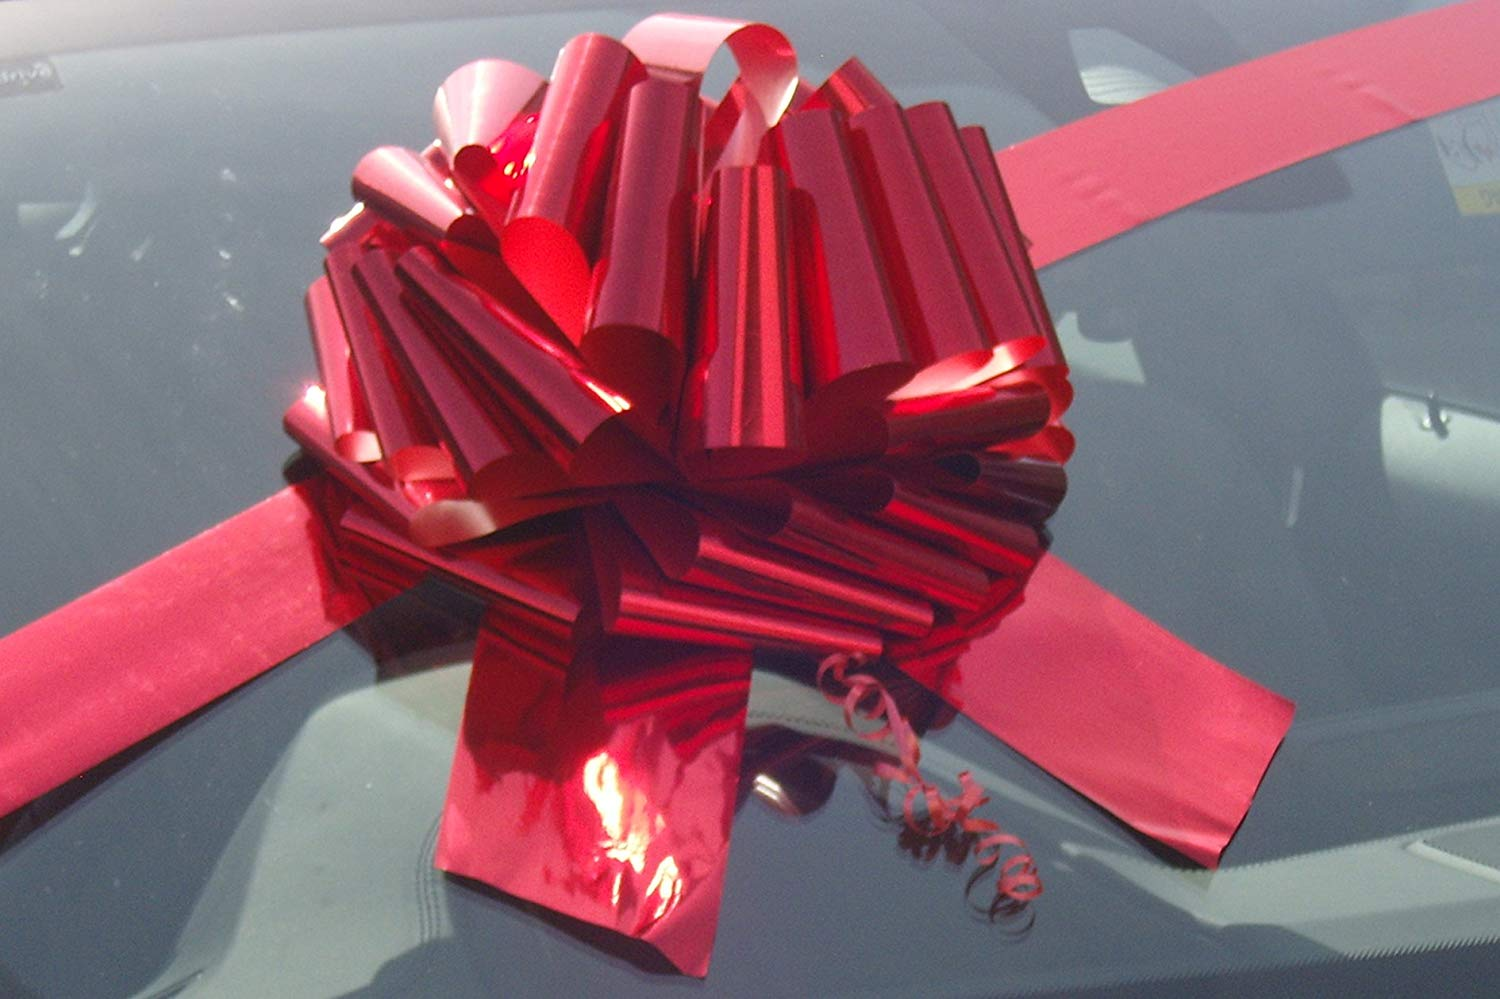 GIANT CAR BOW (12 inch) + 3 METRES of RIBBON for Cars, Bikes, Big Birthday & Christmas Gifts - METALLIC RED